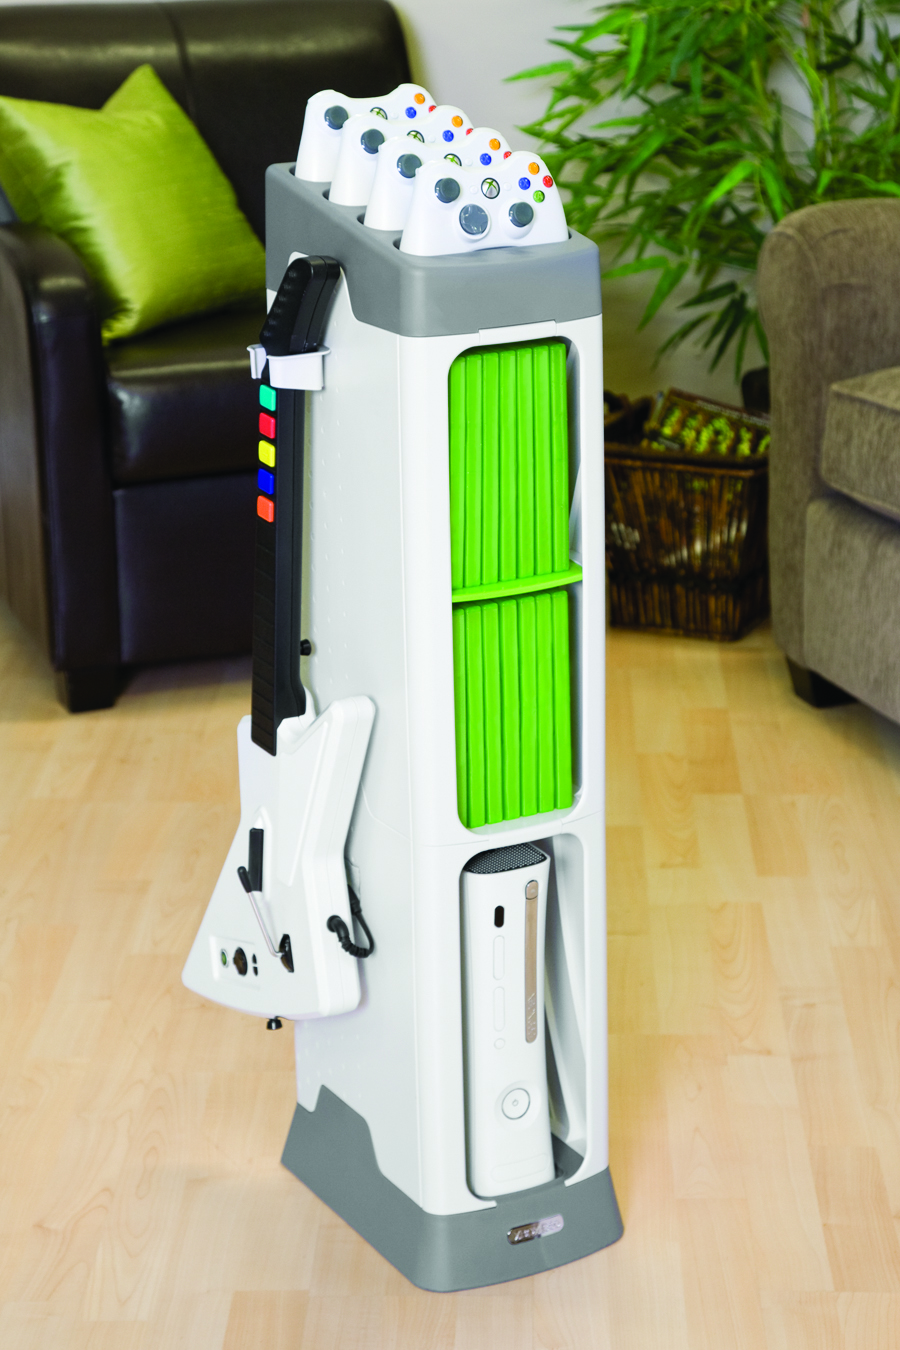 Xbox Generation Gaming Tower Is An All In One Storage Solution For Console And Accessories